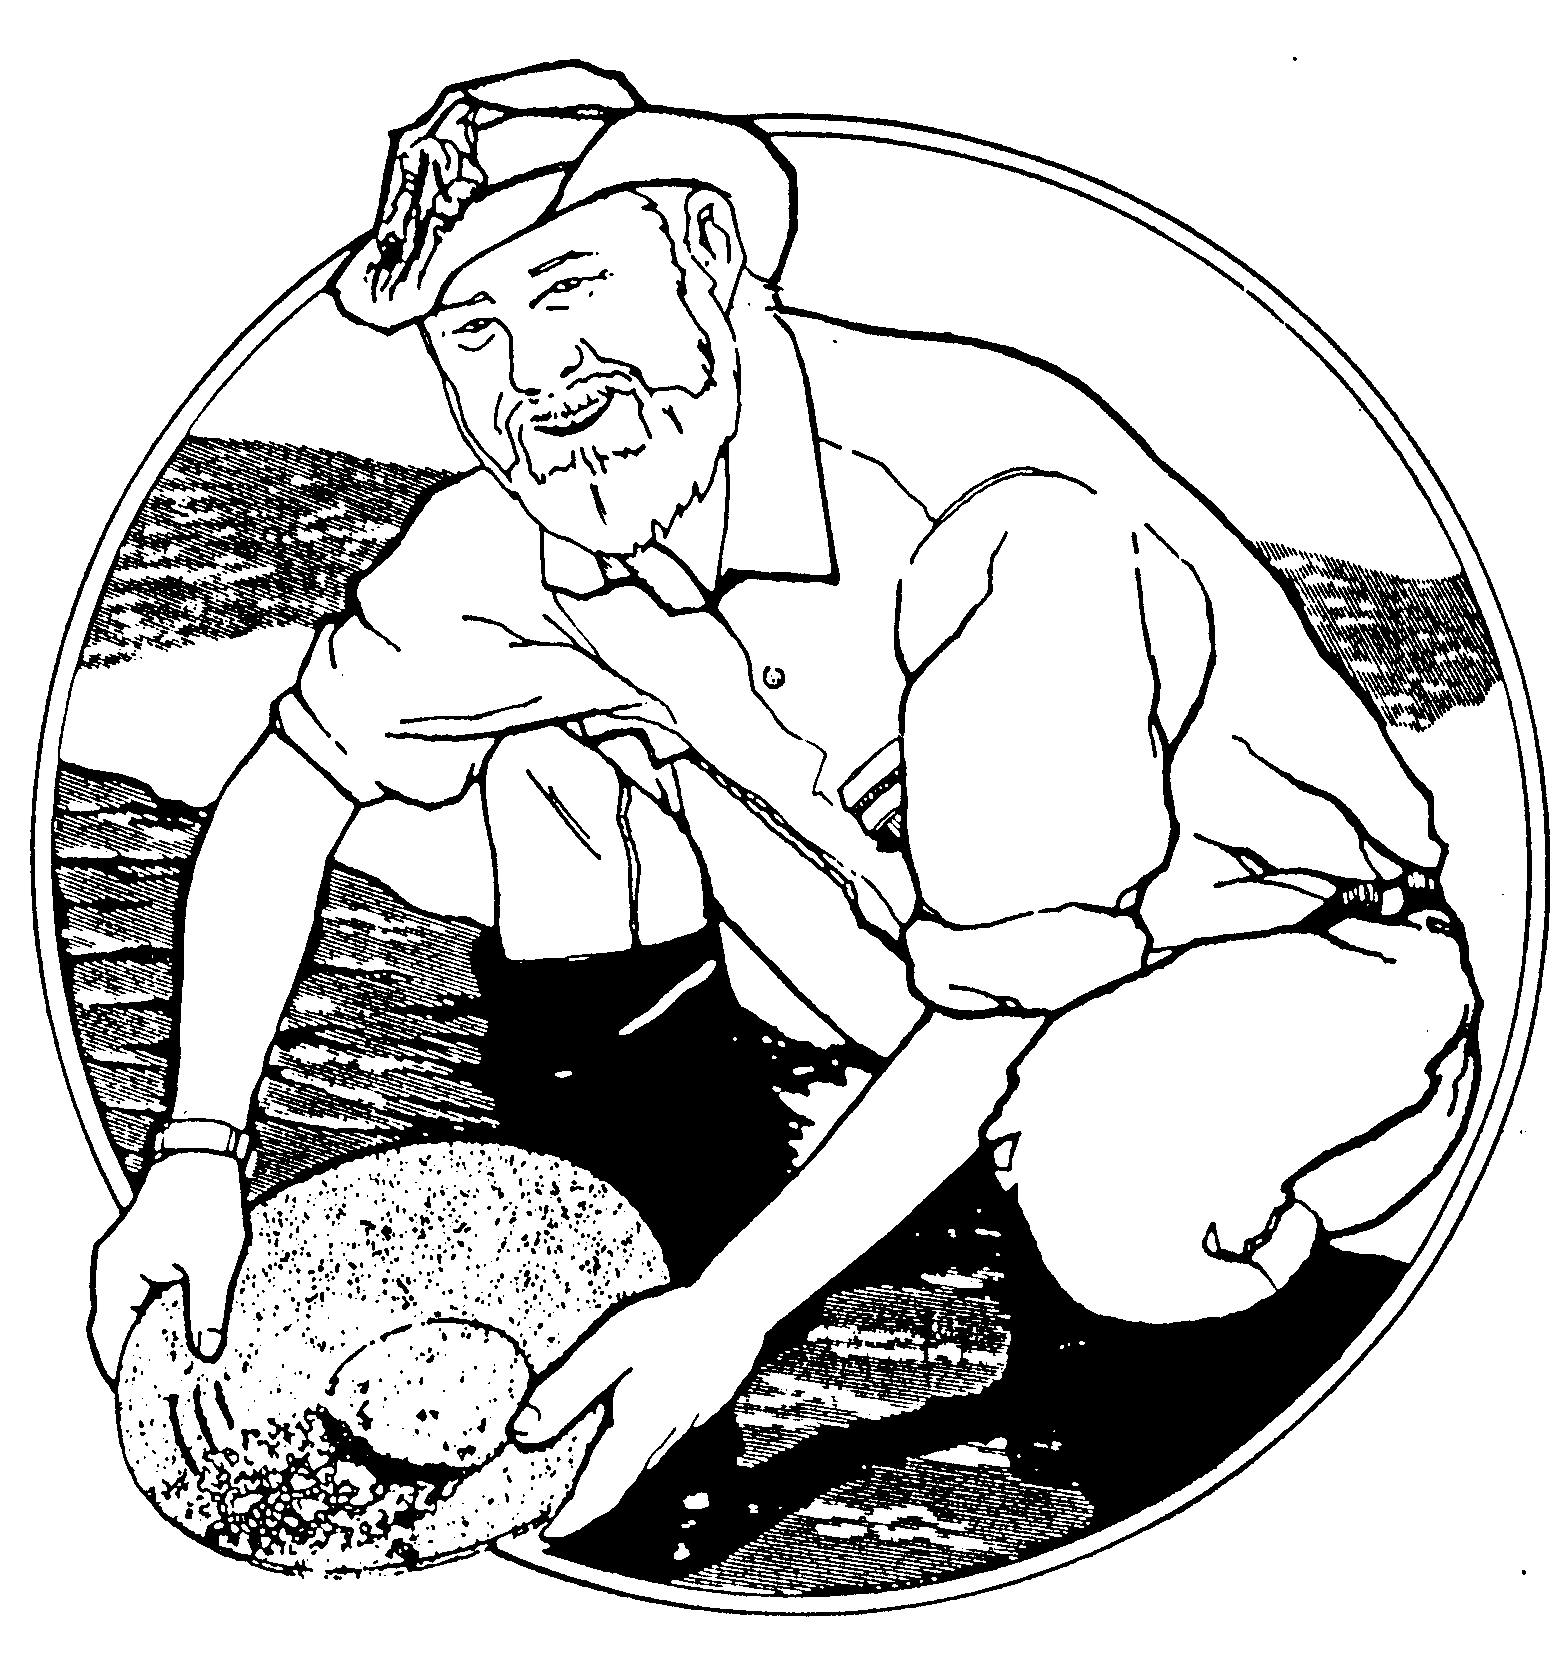 British Gold Panning Association